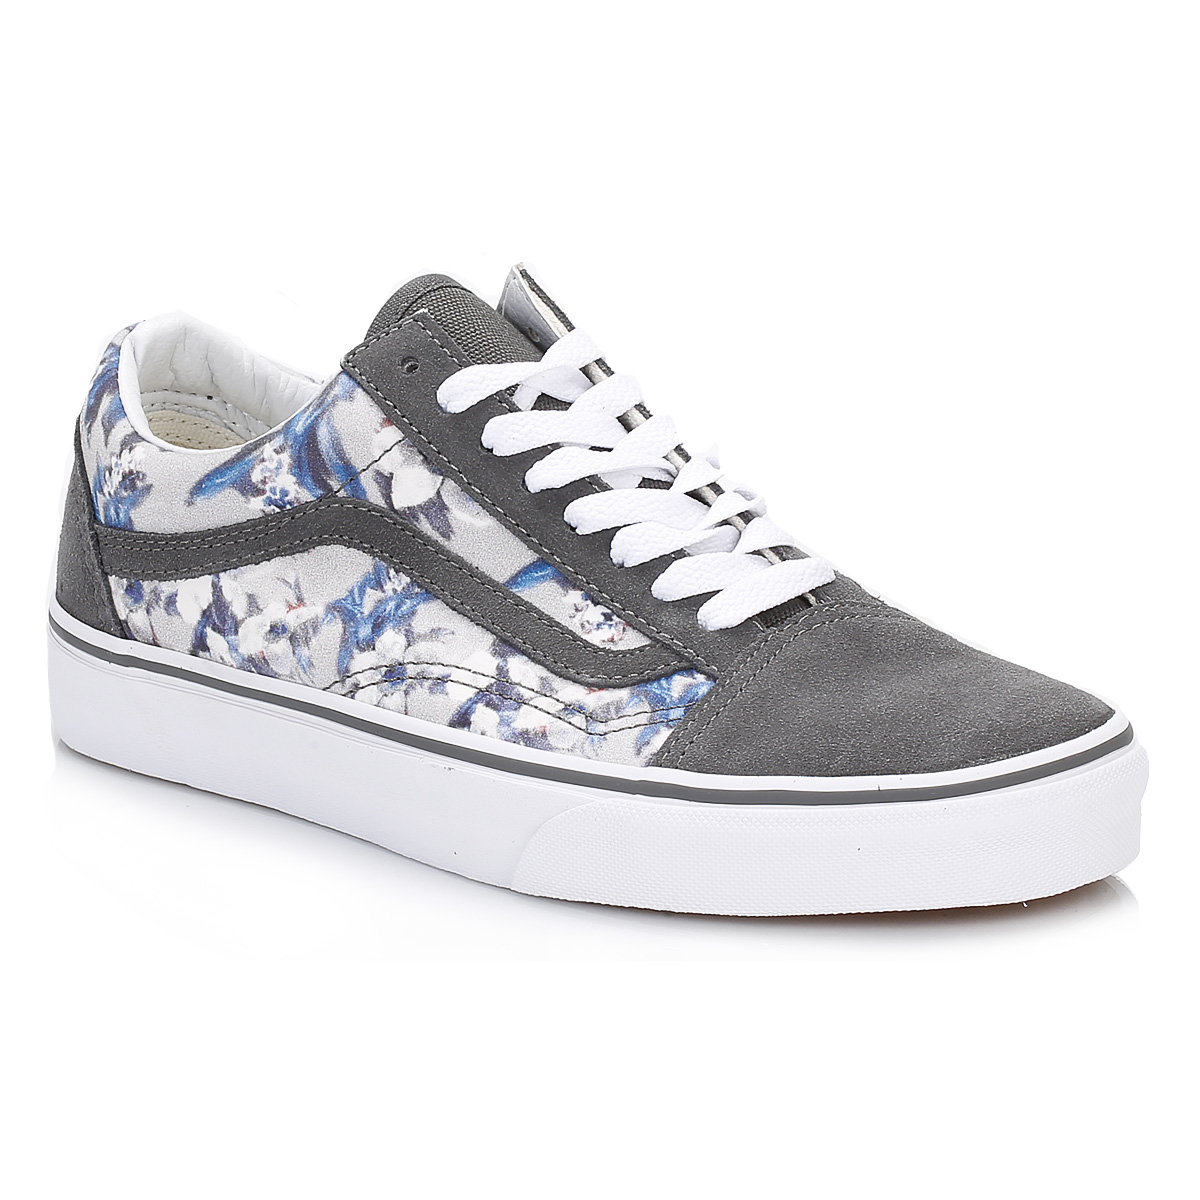 Vans Womens Floral Pewter White Old Skool Suede Trainers